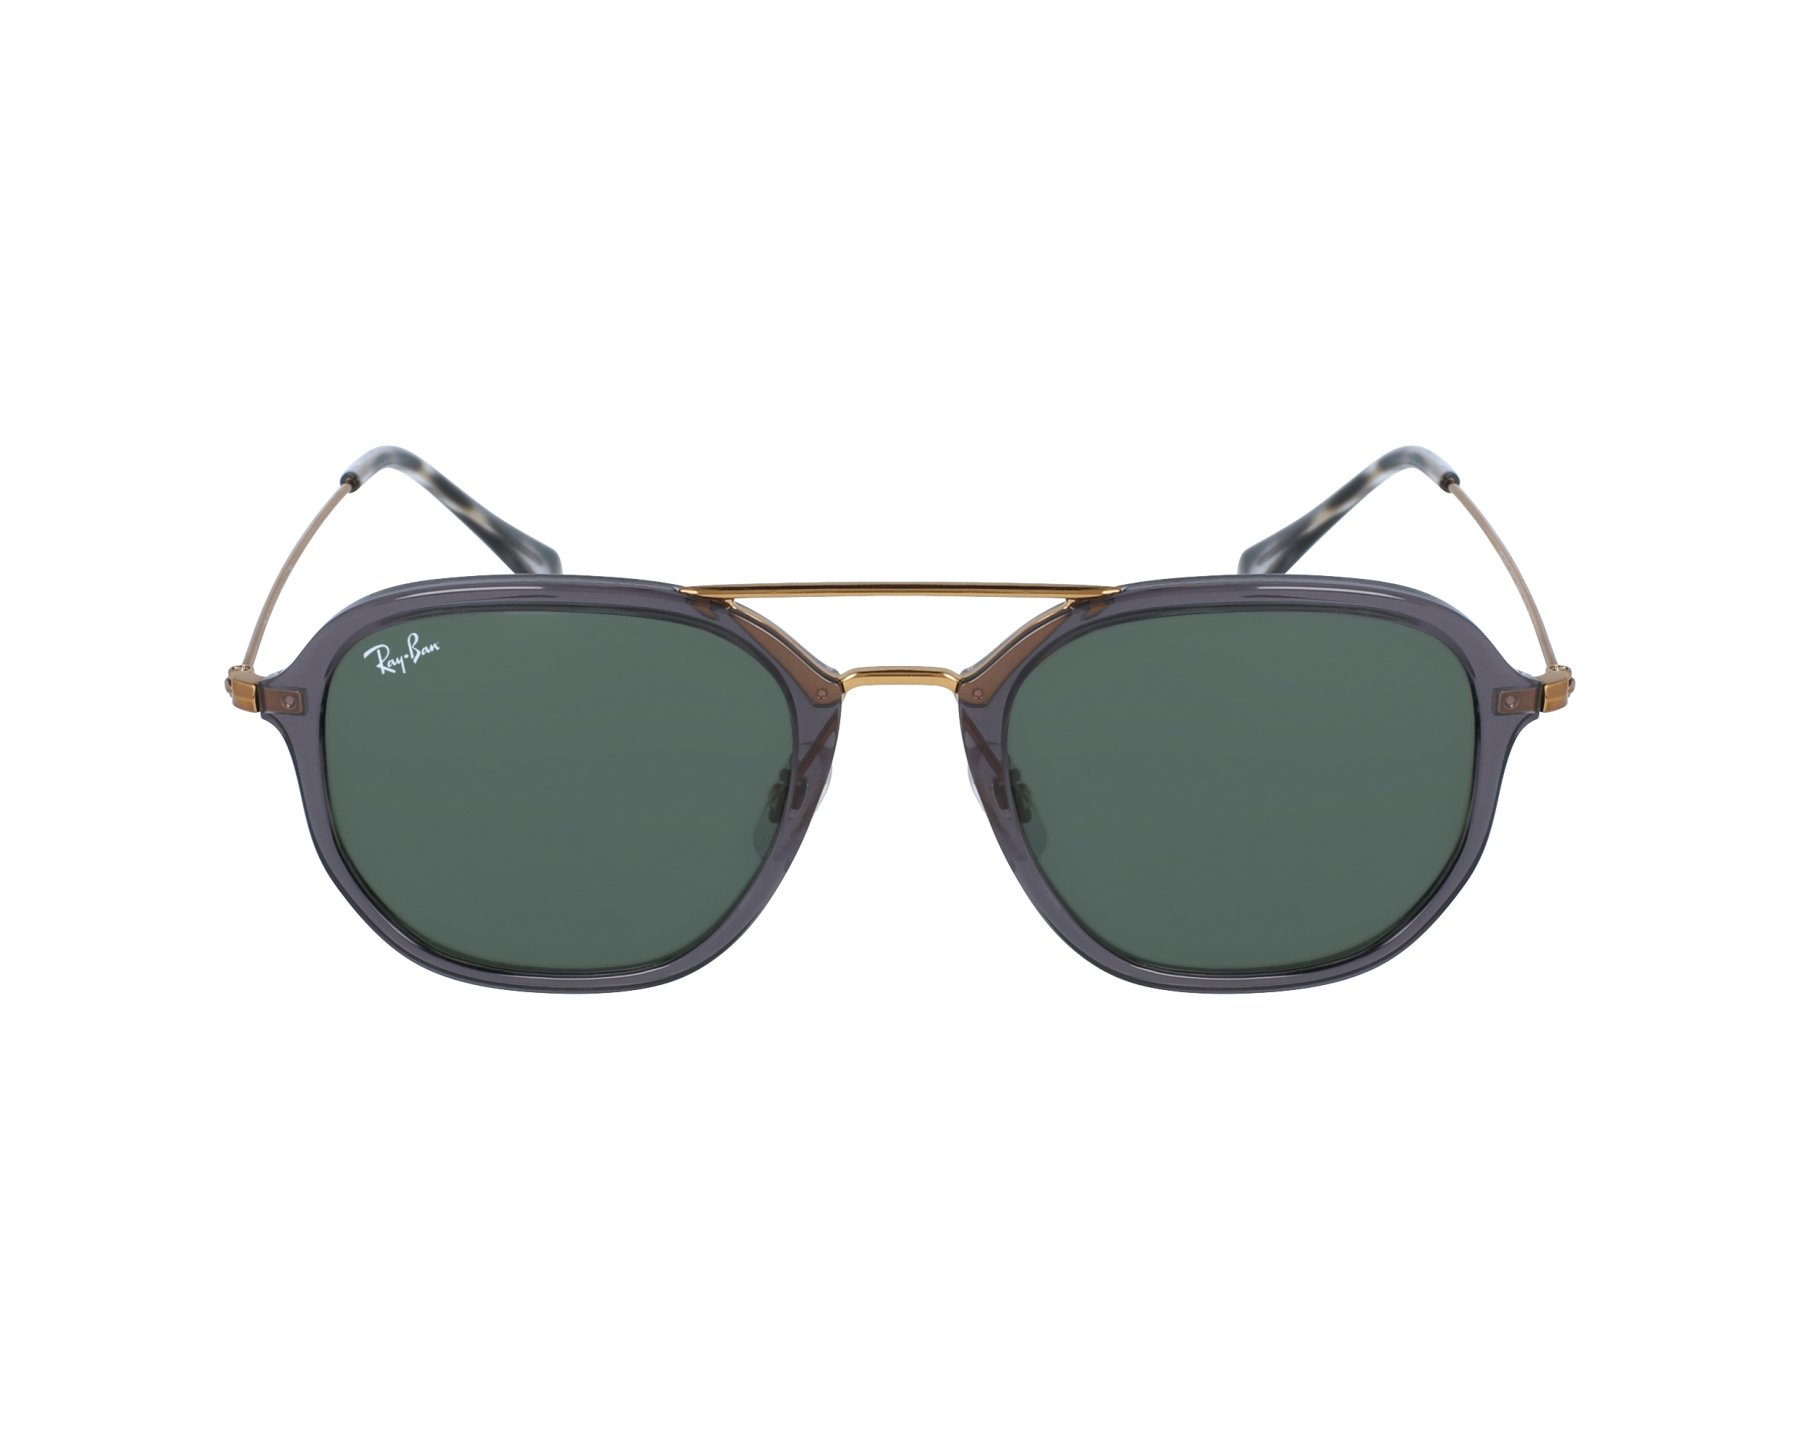 c5117278b6 Sunglasses Ray-Ban RB-4273 6237 52-21 Black Gold profile view